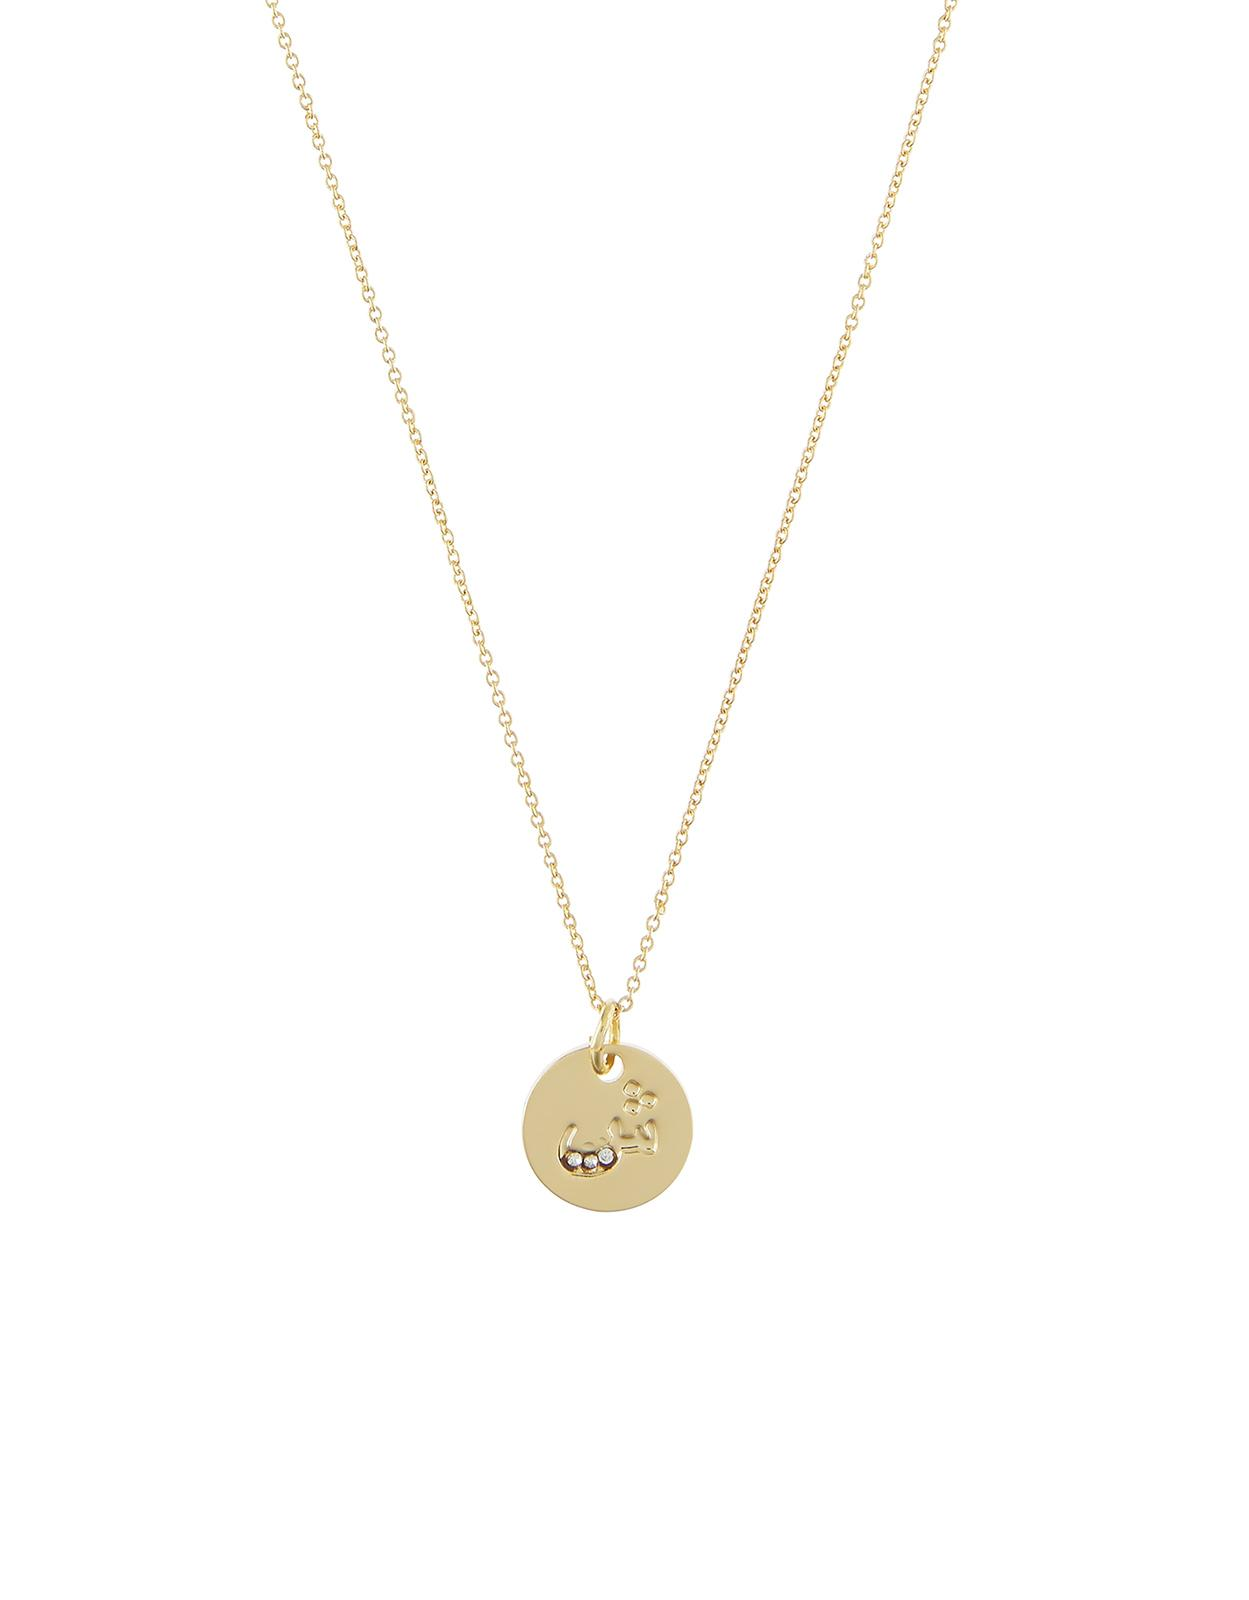 Accessorize Gold Plated Arabic Sh Initial Pendant Necklace in Metallic